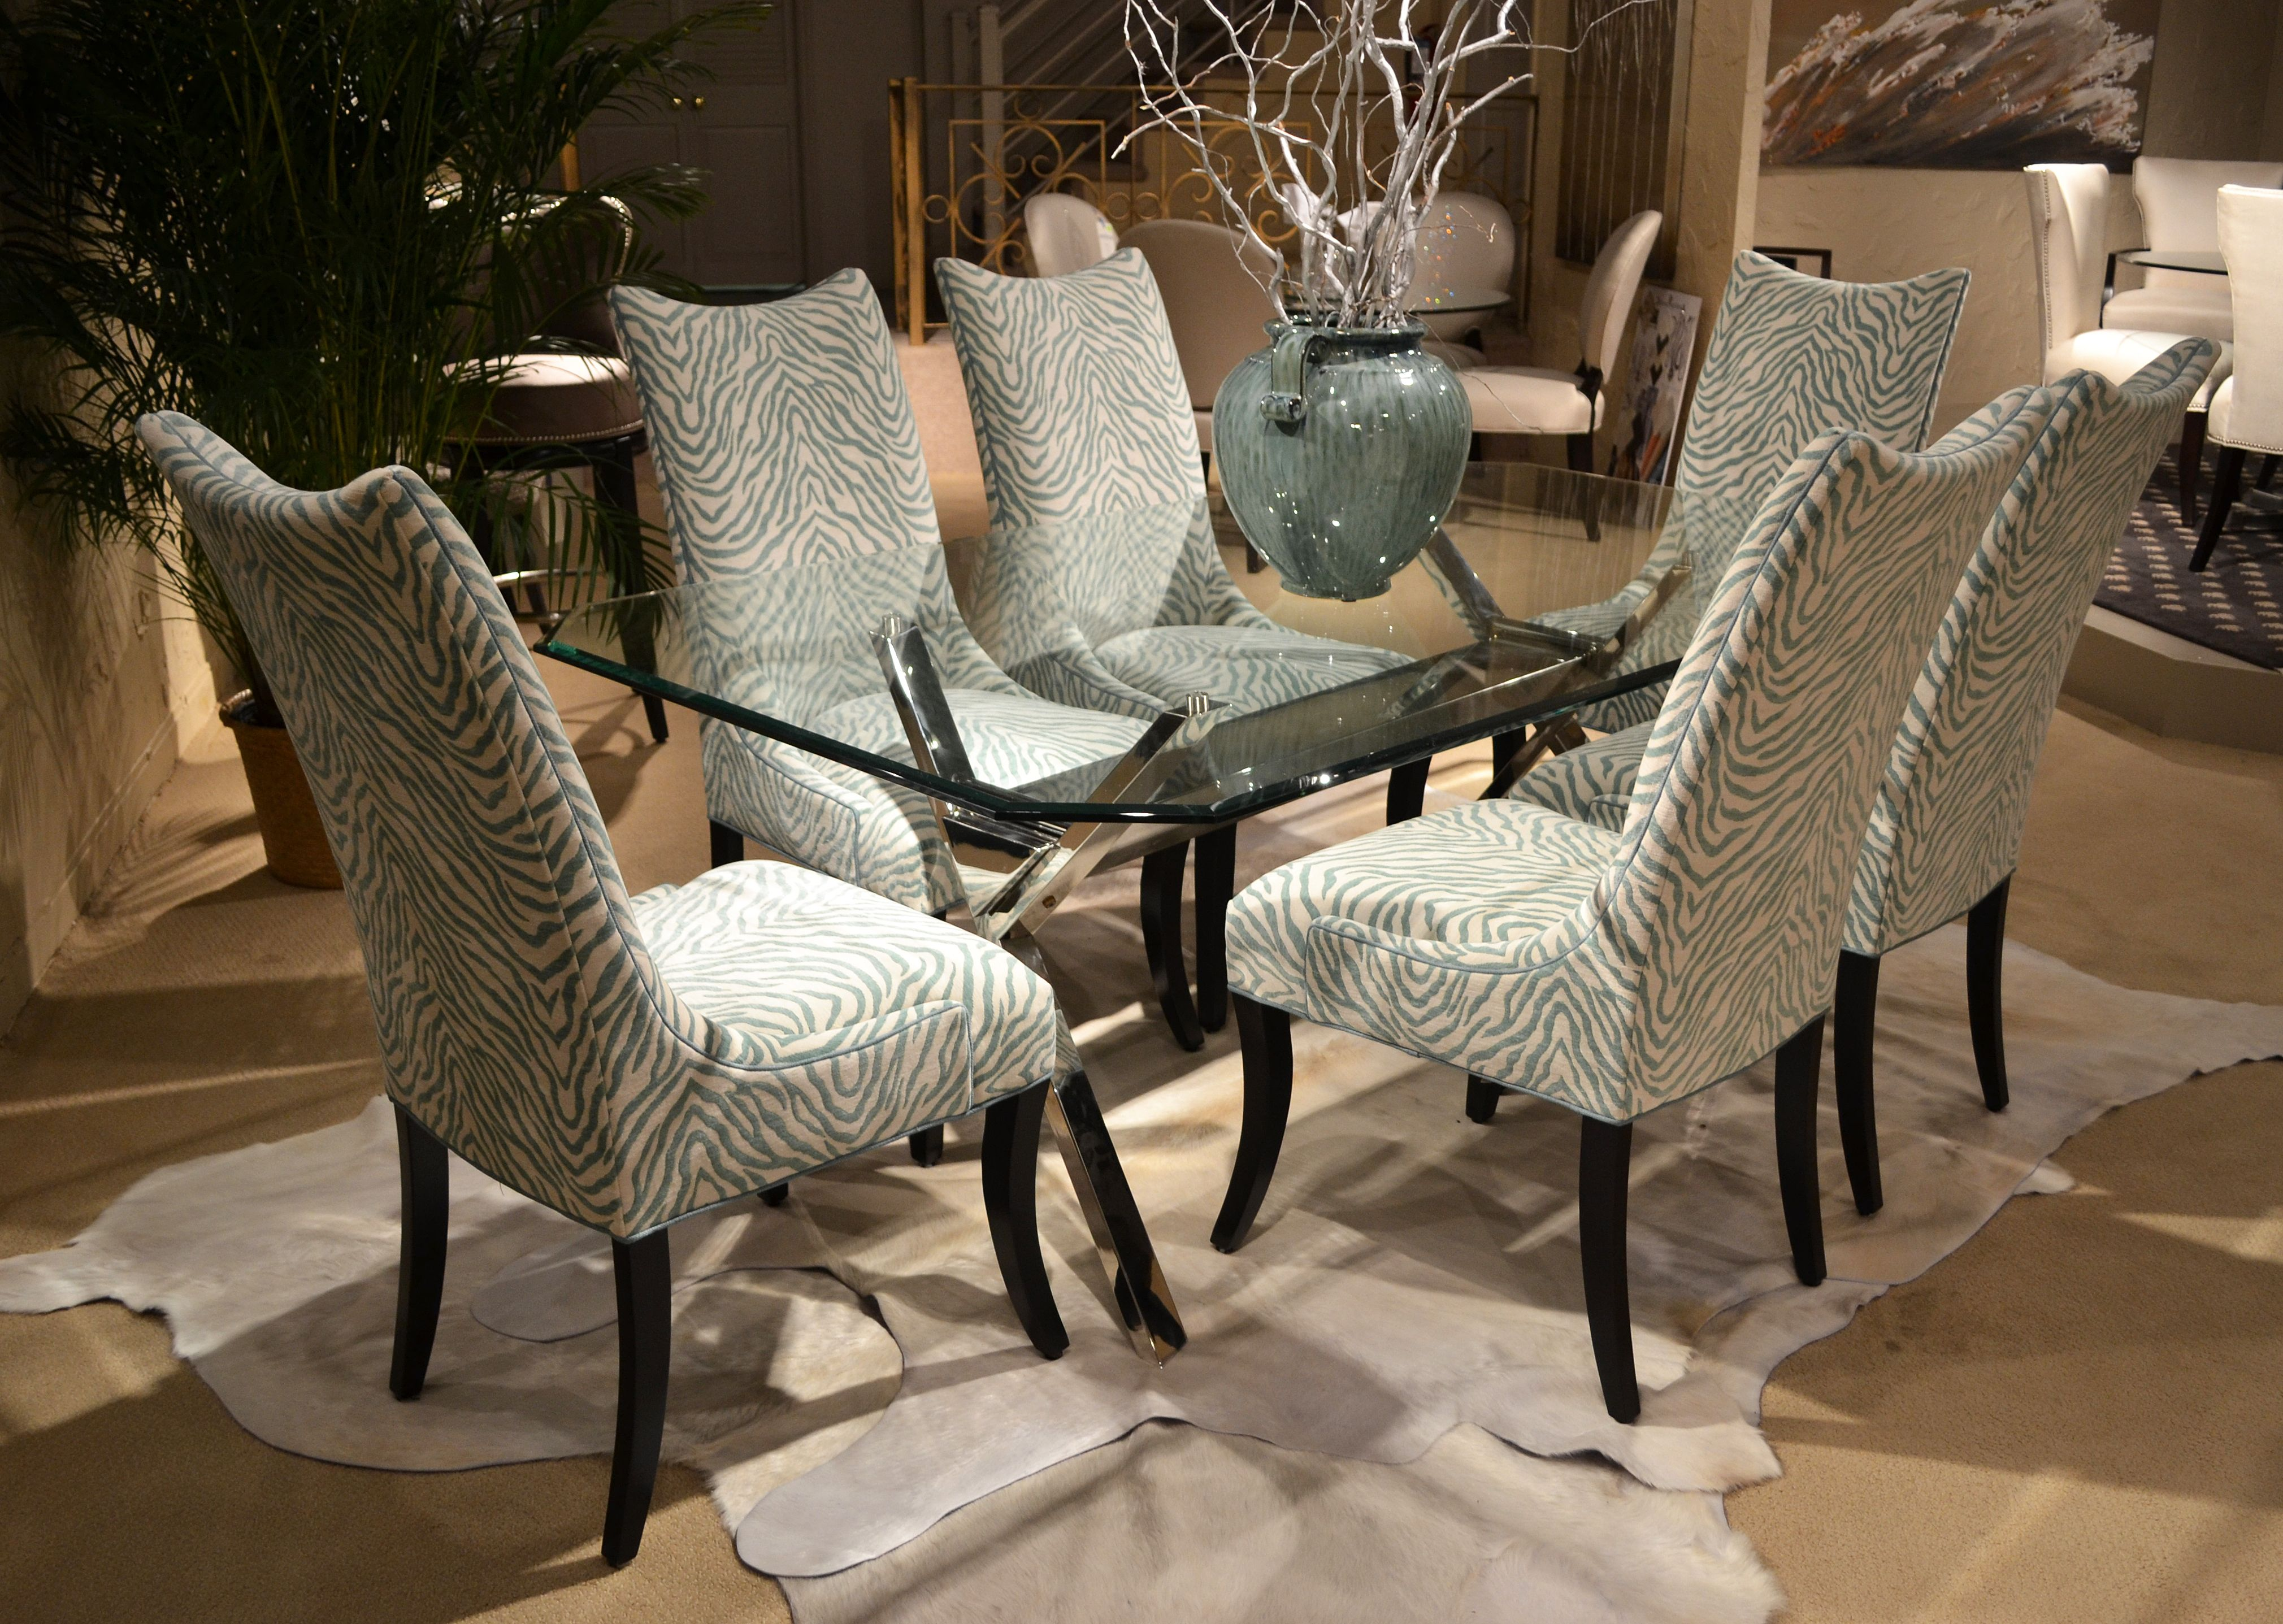 Designmaster Nassau Dining Chair Set In Turquoise And Cream Zebra Skin Look  #hpmkt Designmaster Furniture